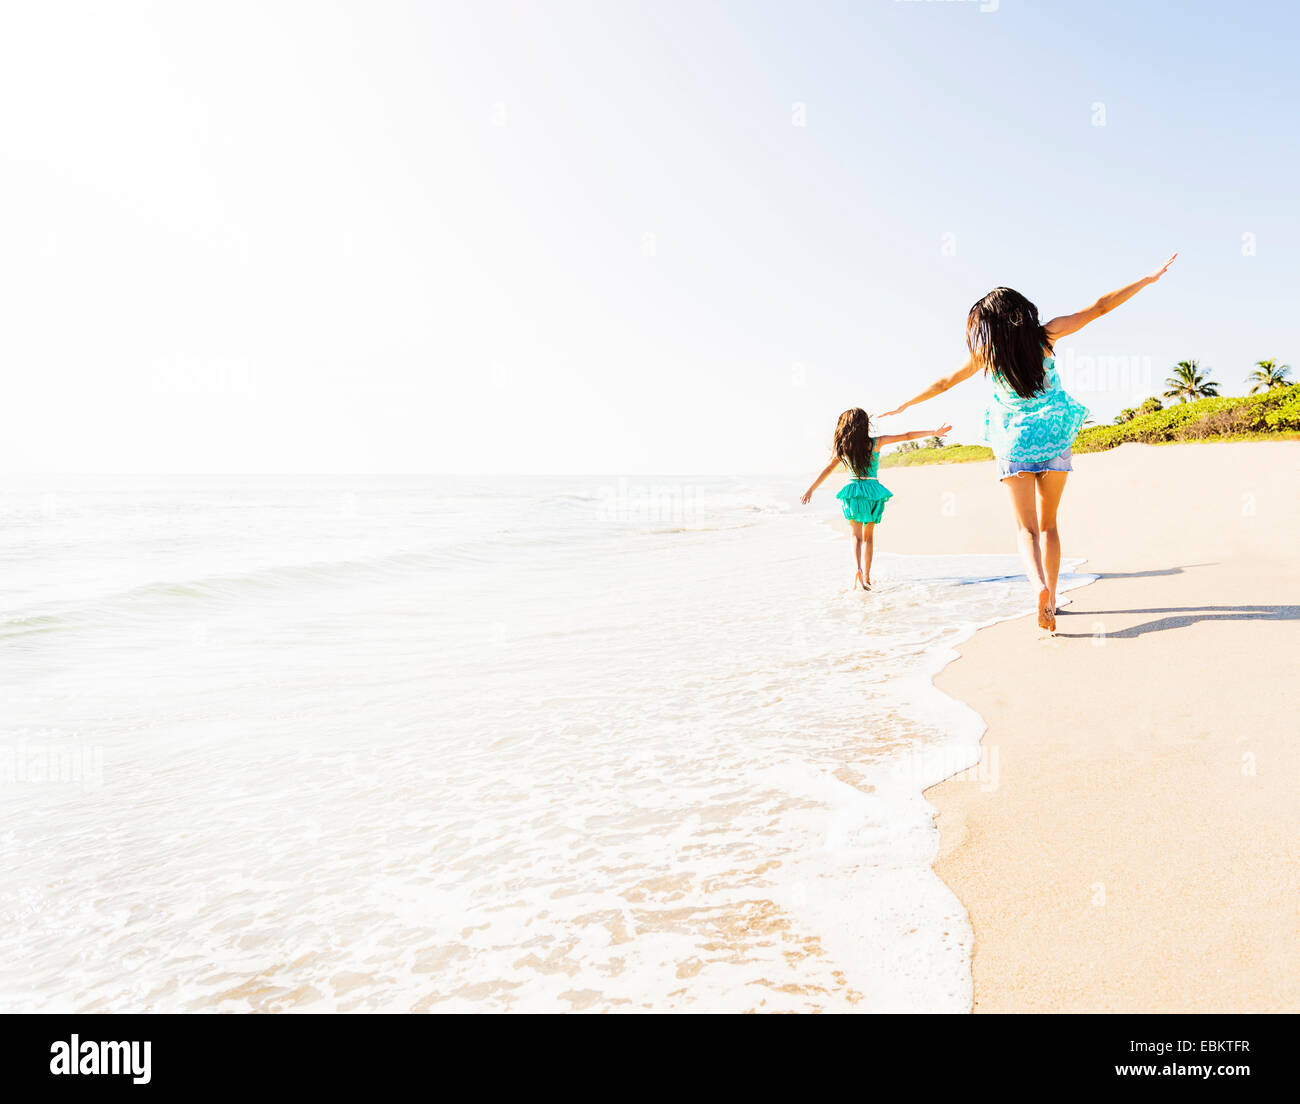 USA, Florida, Jupiter, Rear view of girl (6-7) and her mom running on beach - Stock Image